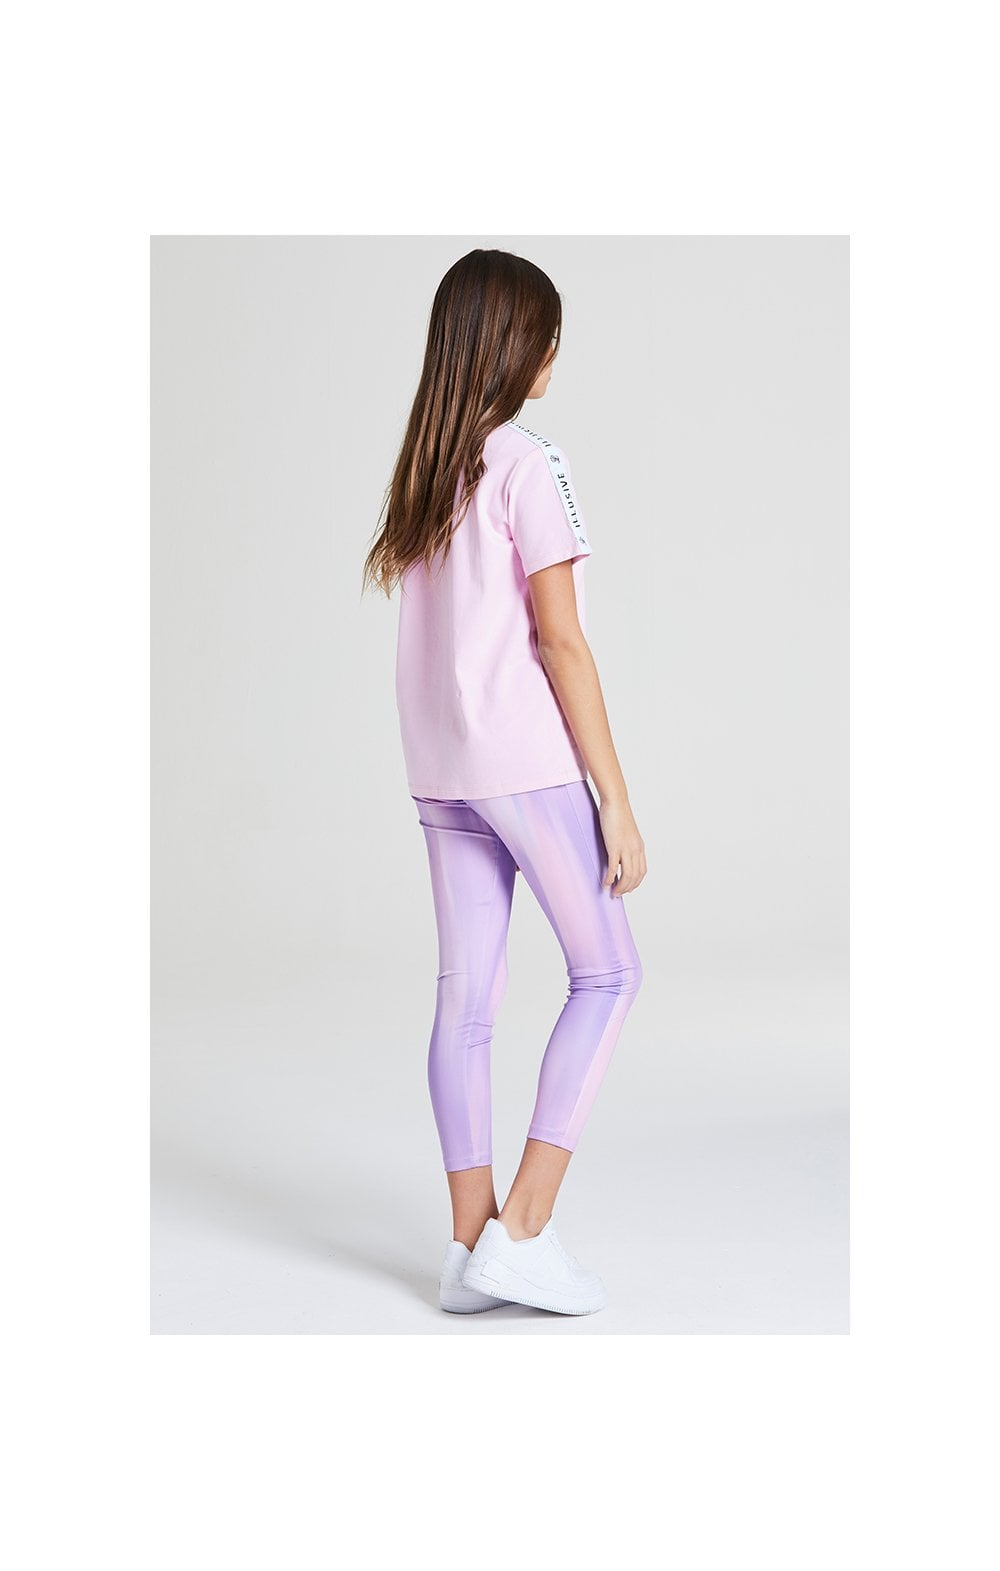 Illusive London BF Fit Taped Tee -  Pink (3)